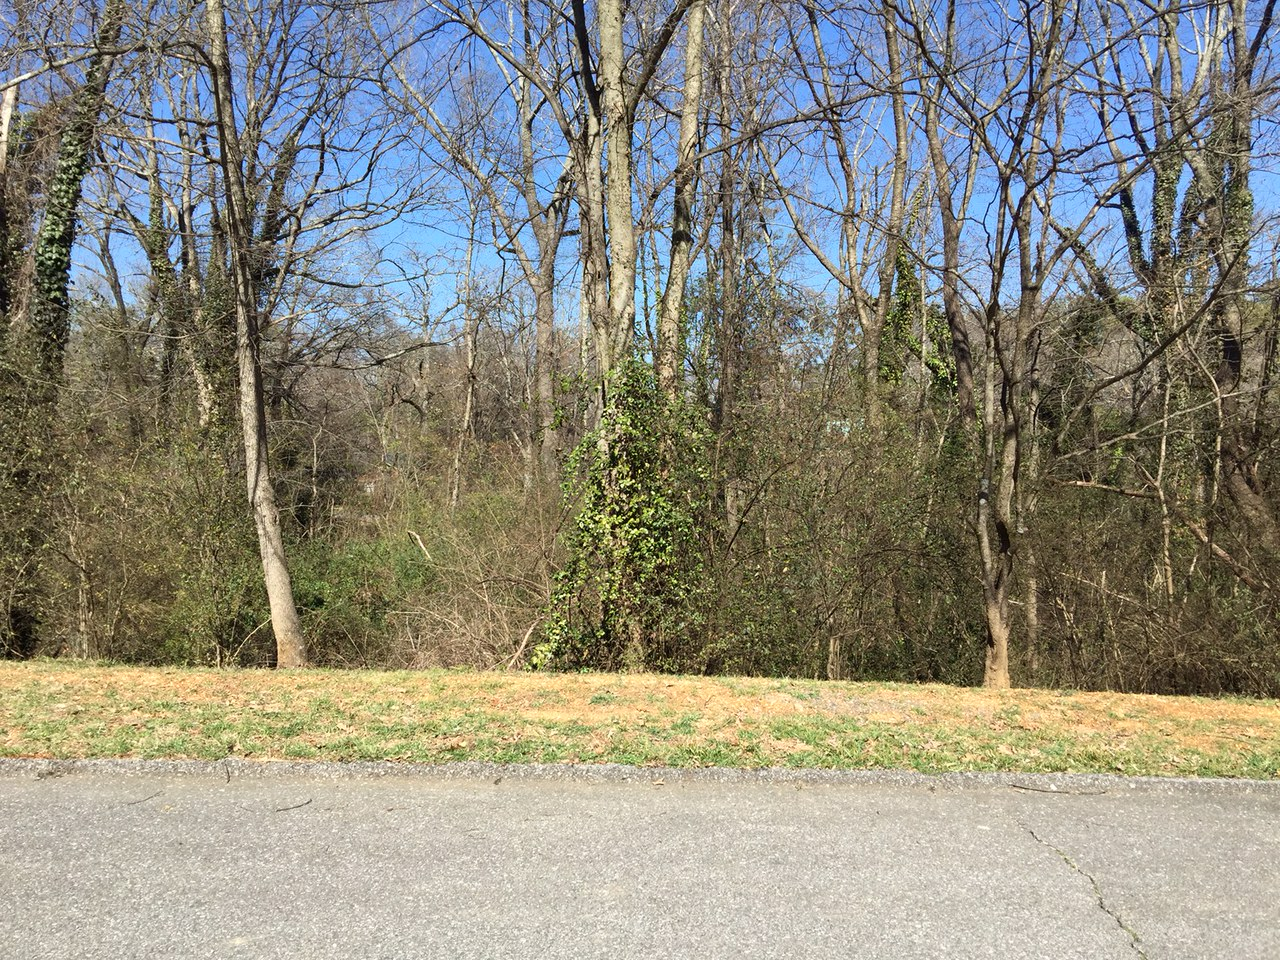 0 Brownwood Dr, Chattanooga, Tennessee 37404